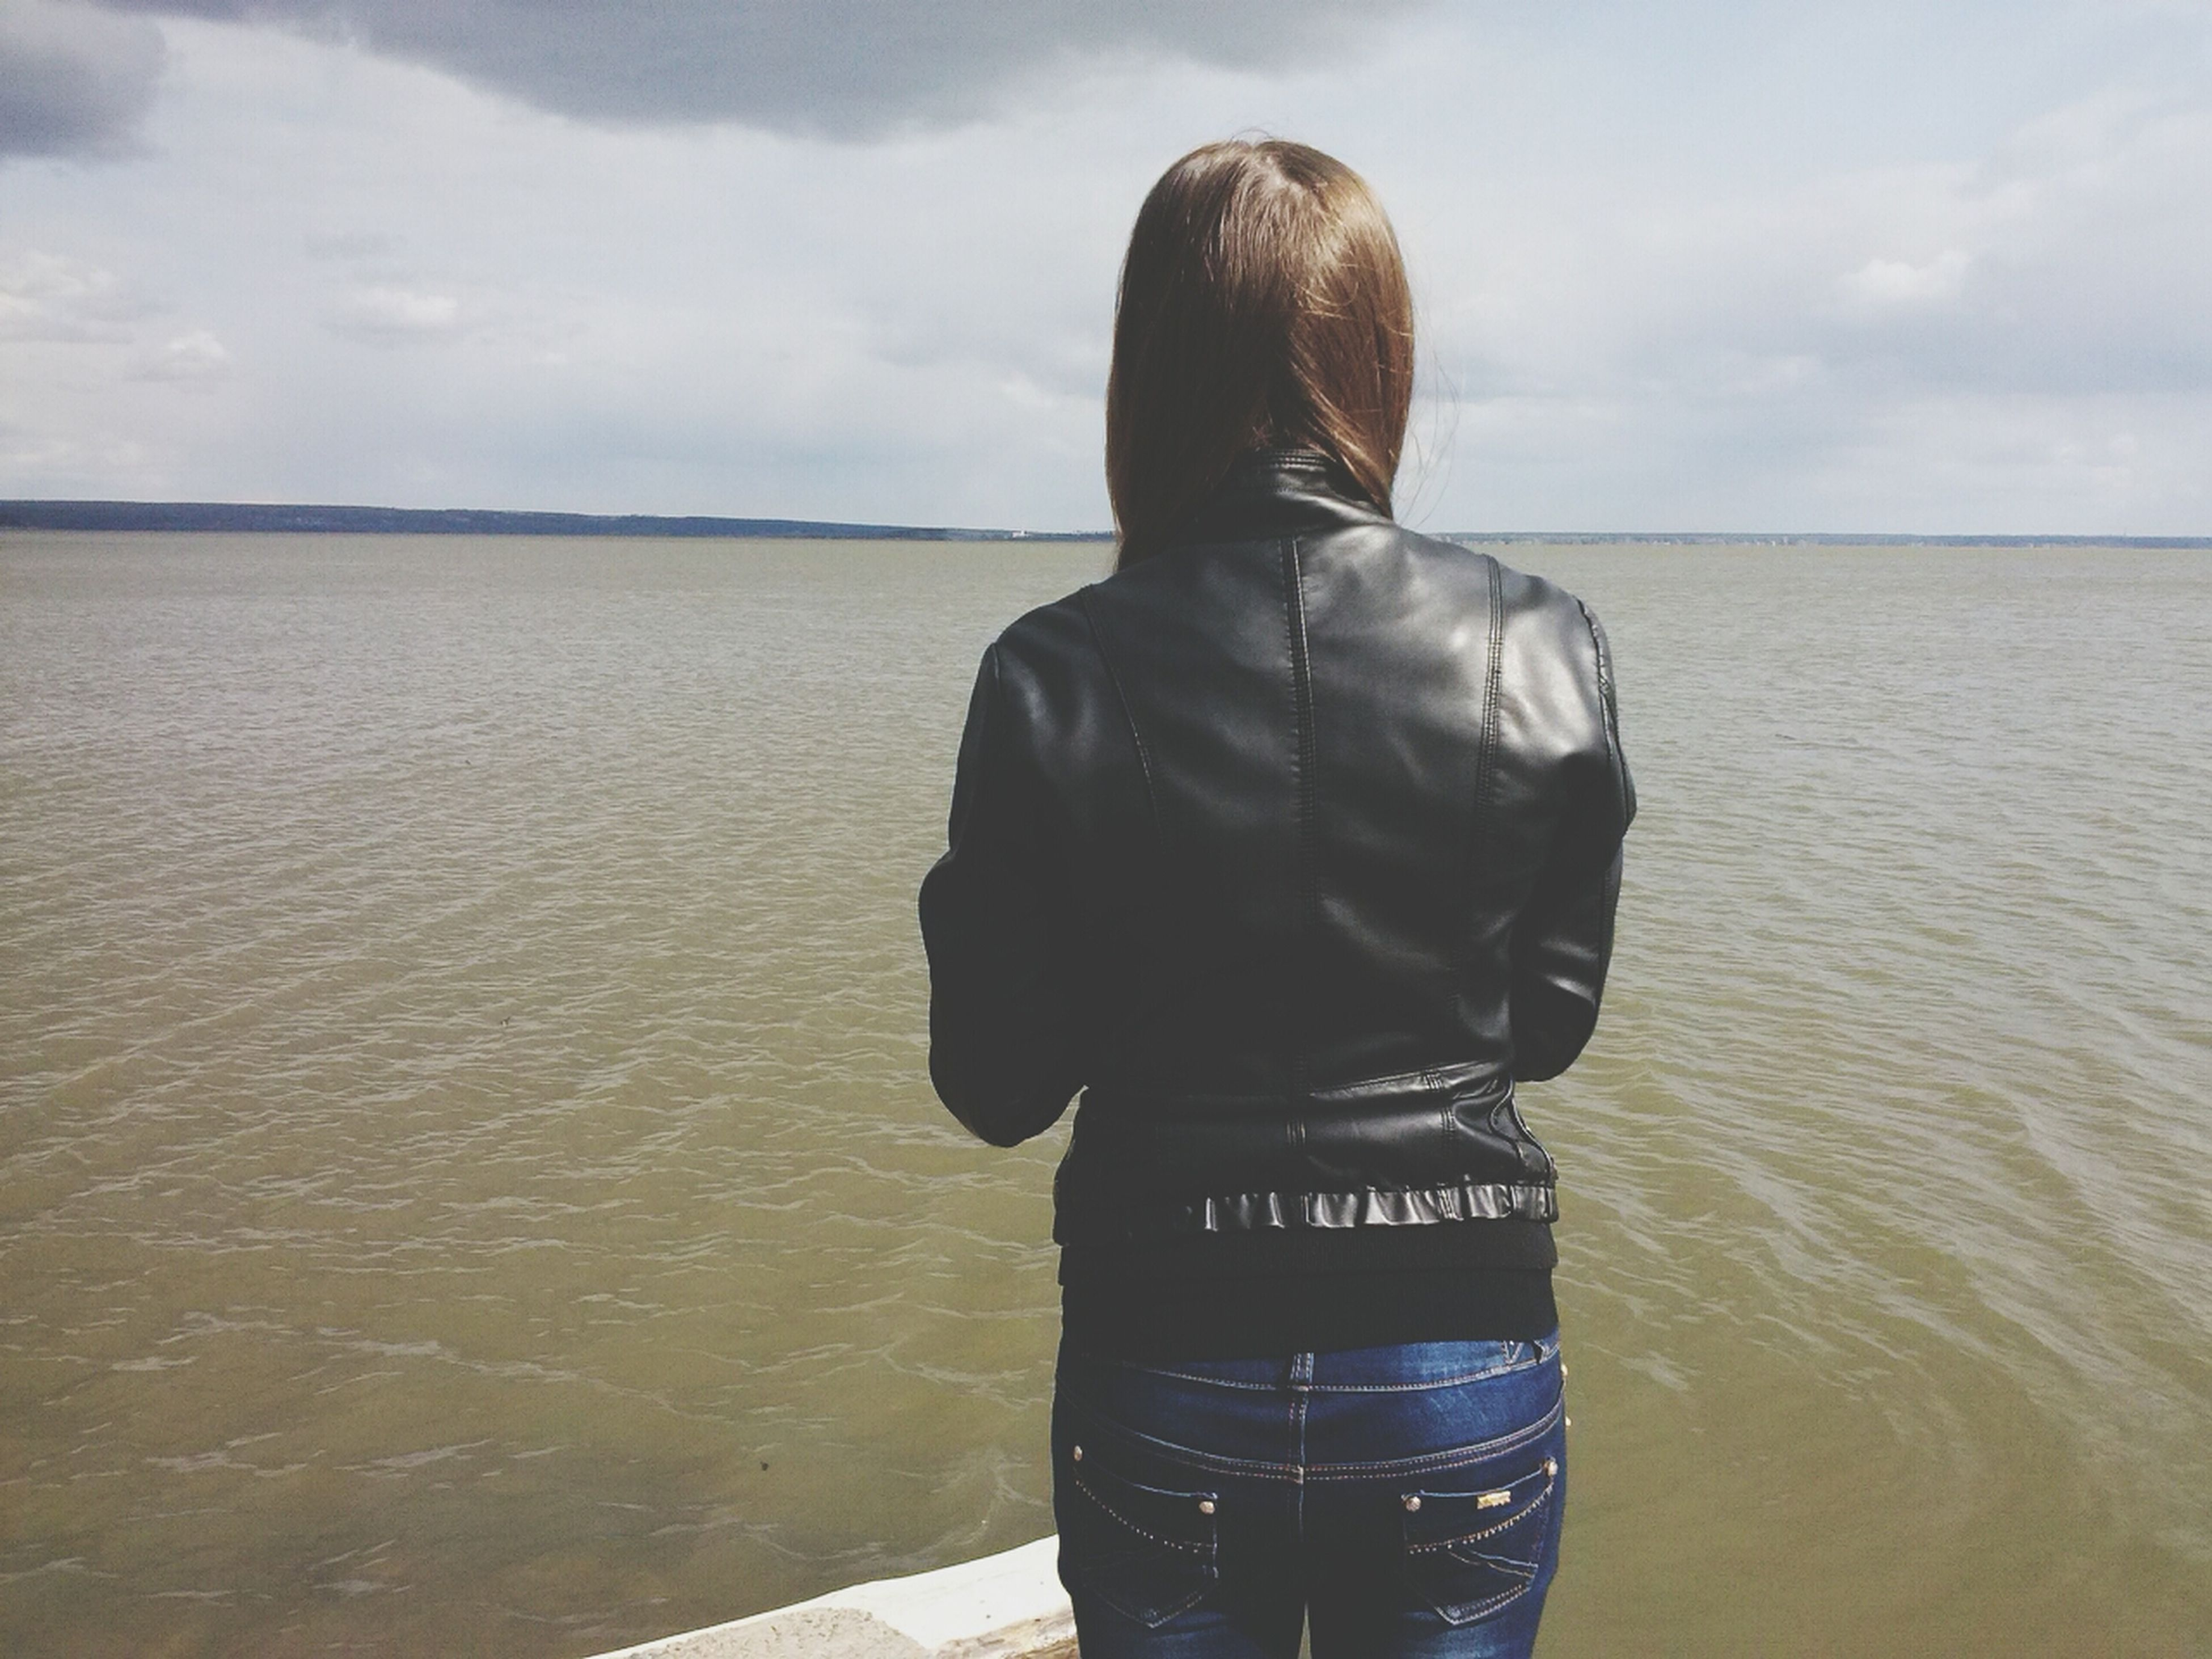 water, sea, sky, rear view, horizon over water, lifestyles, standing, tranquil scene, tranquility, cloud - sky, leisure activity, scenics, beauty in nature, beach, casual clothing, nature, cloud, three quarter length